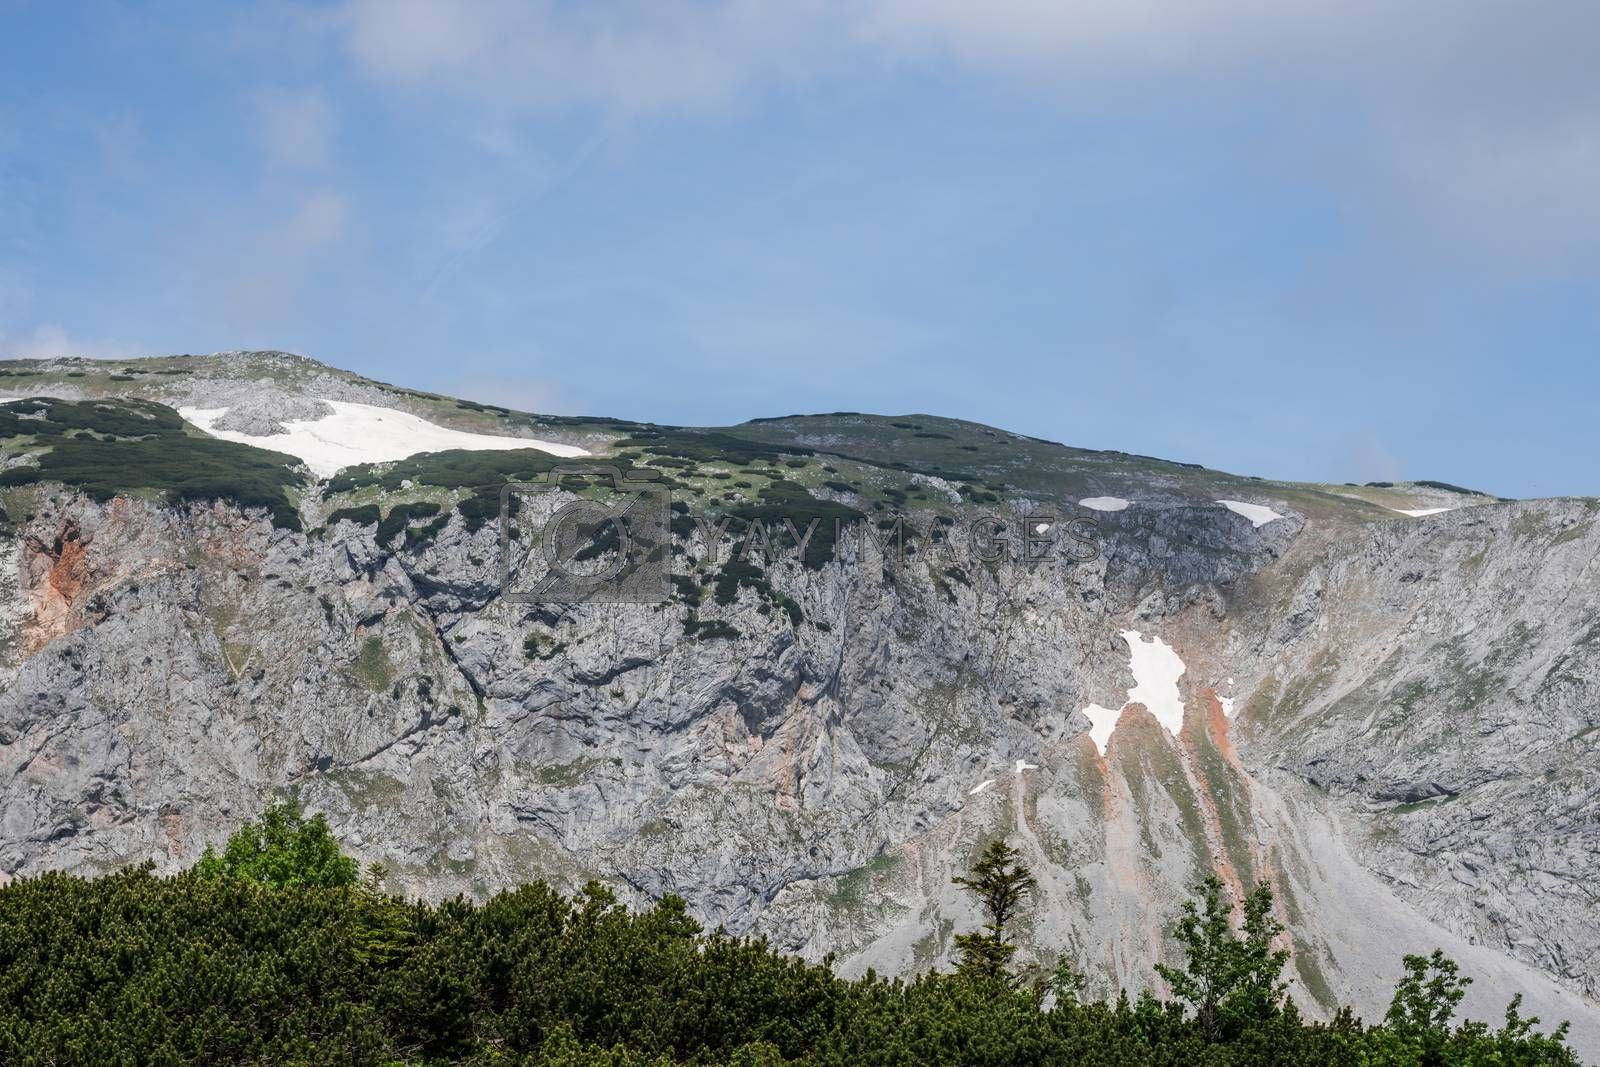 high rock wall with snow in summer while hiking